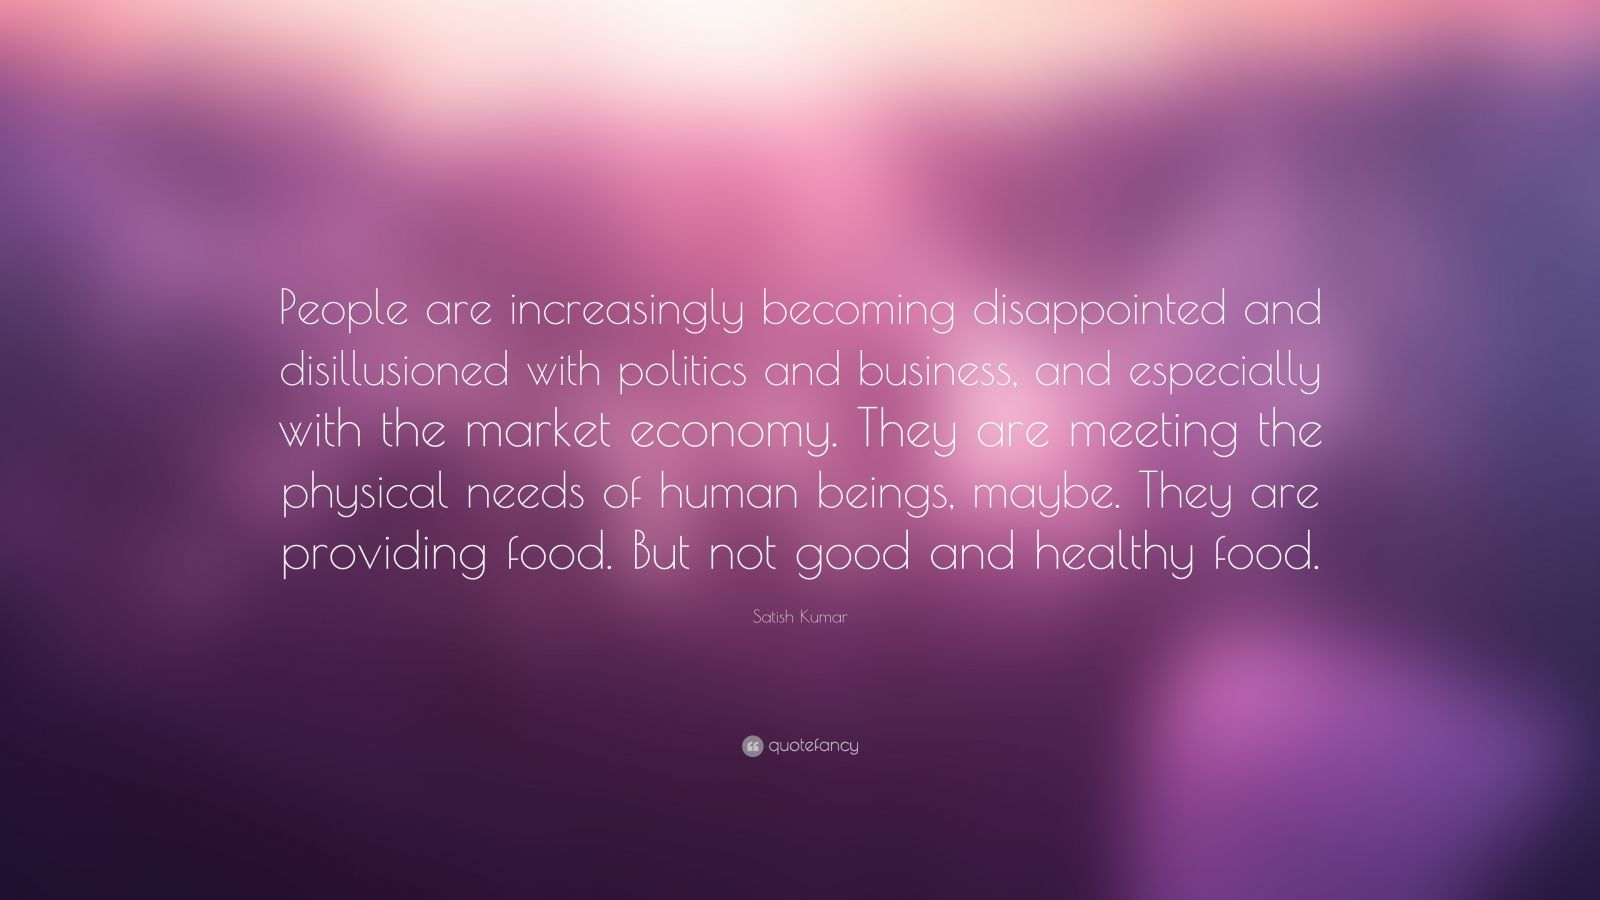 """Satish Kumar Quote: """"People are increasingly becoming disappointed and disillusioned with politics and business, and especially with the market economy. They are meeting the physical needs of human beings, maybe. They are providing food. But not good and healthy food."""""""